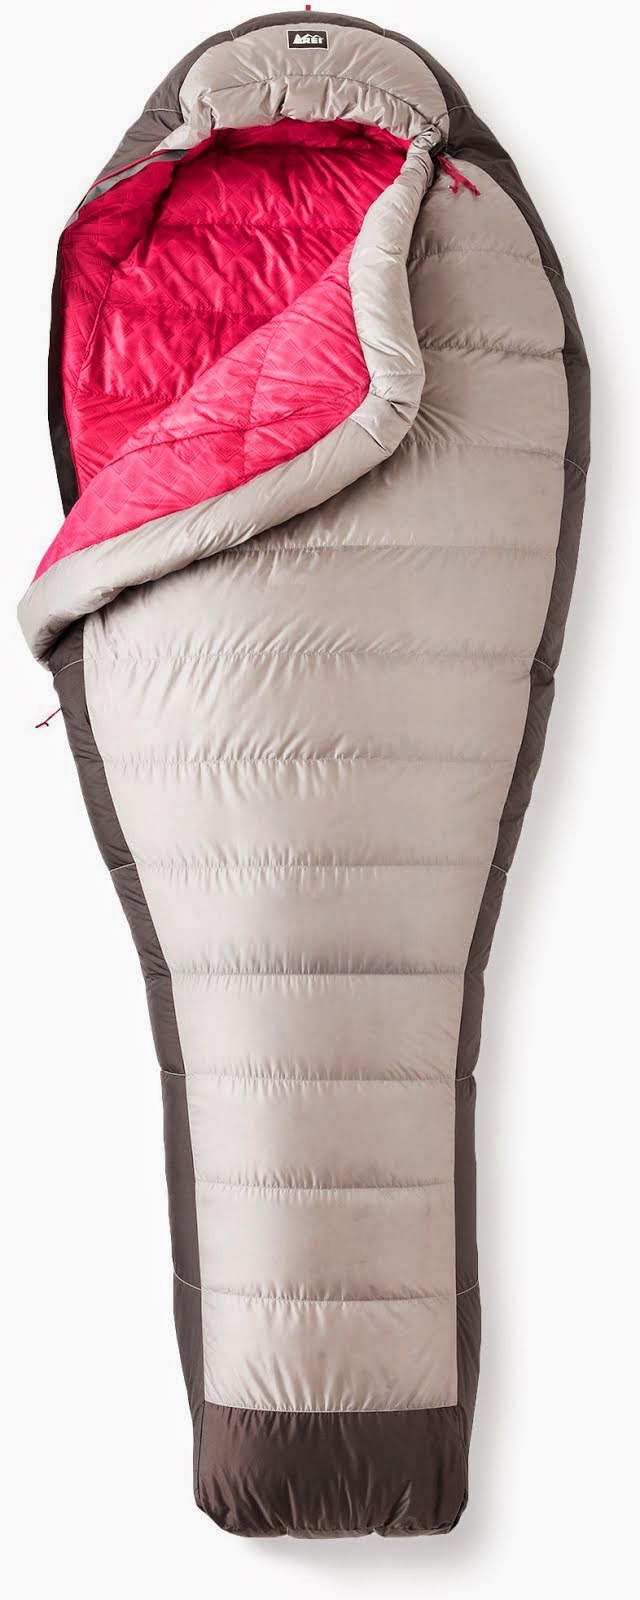 REI's Joule Down Sleeping Bag